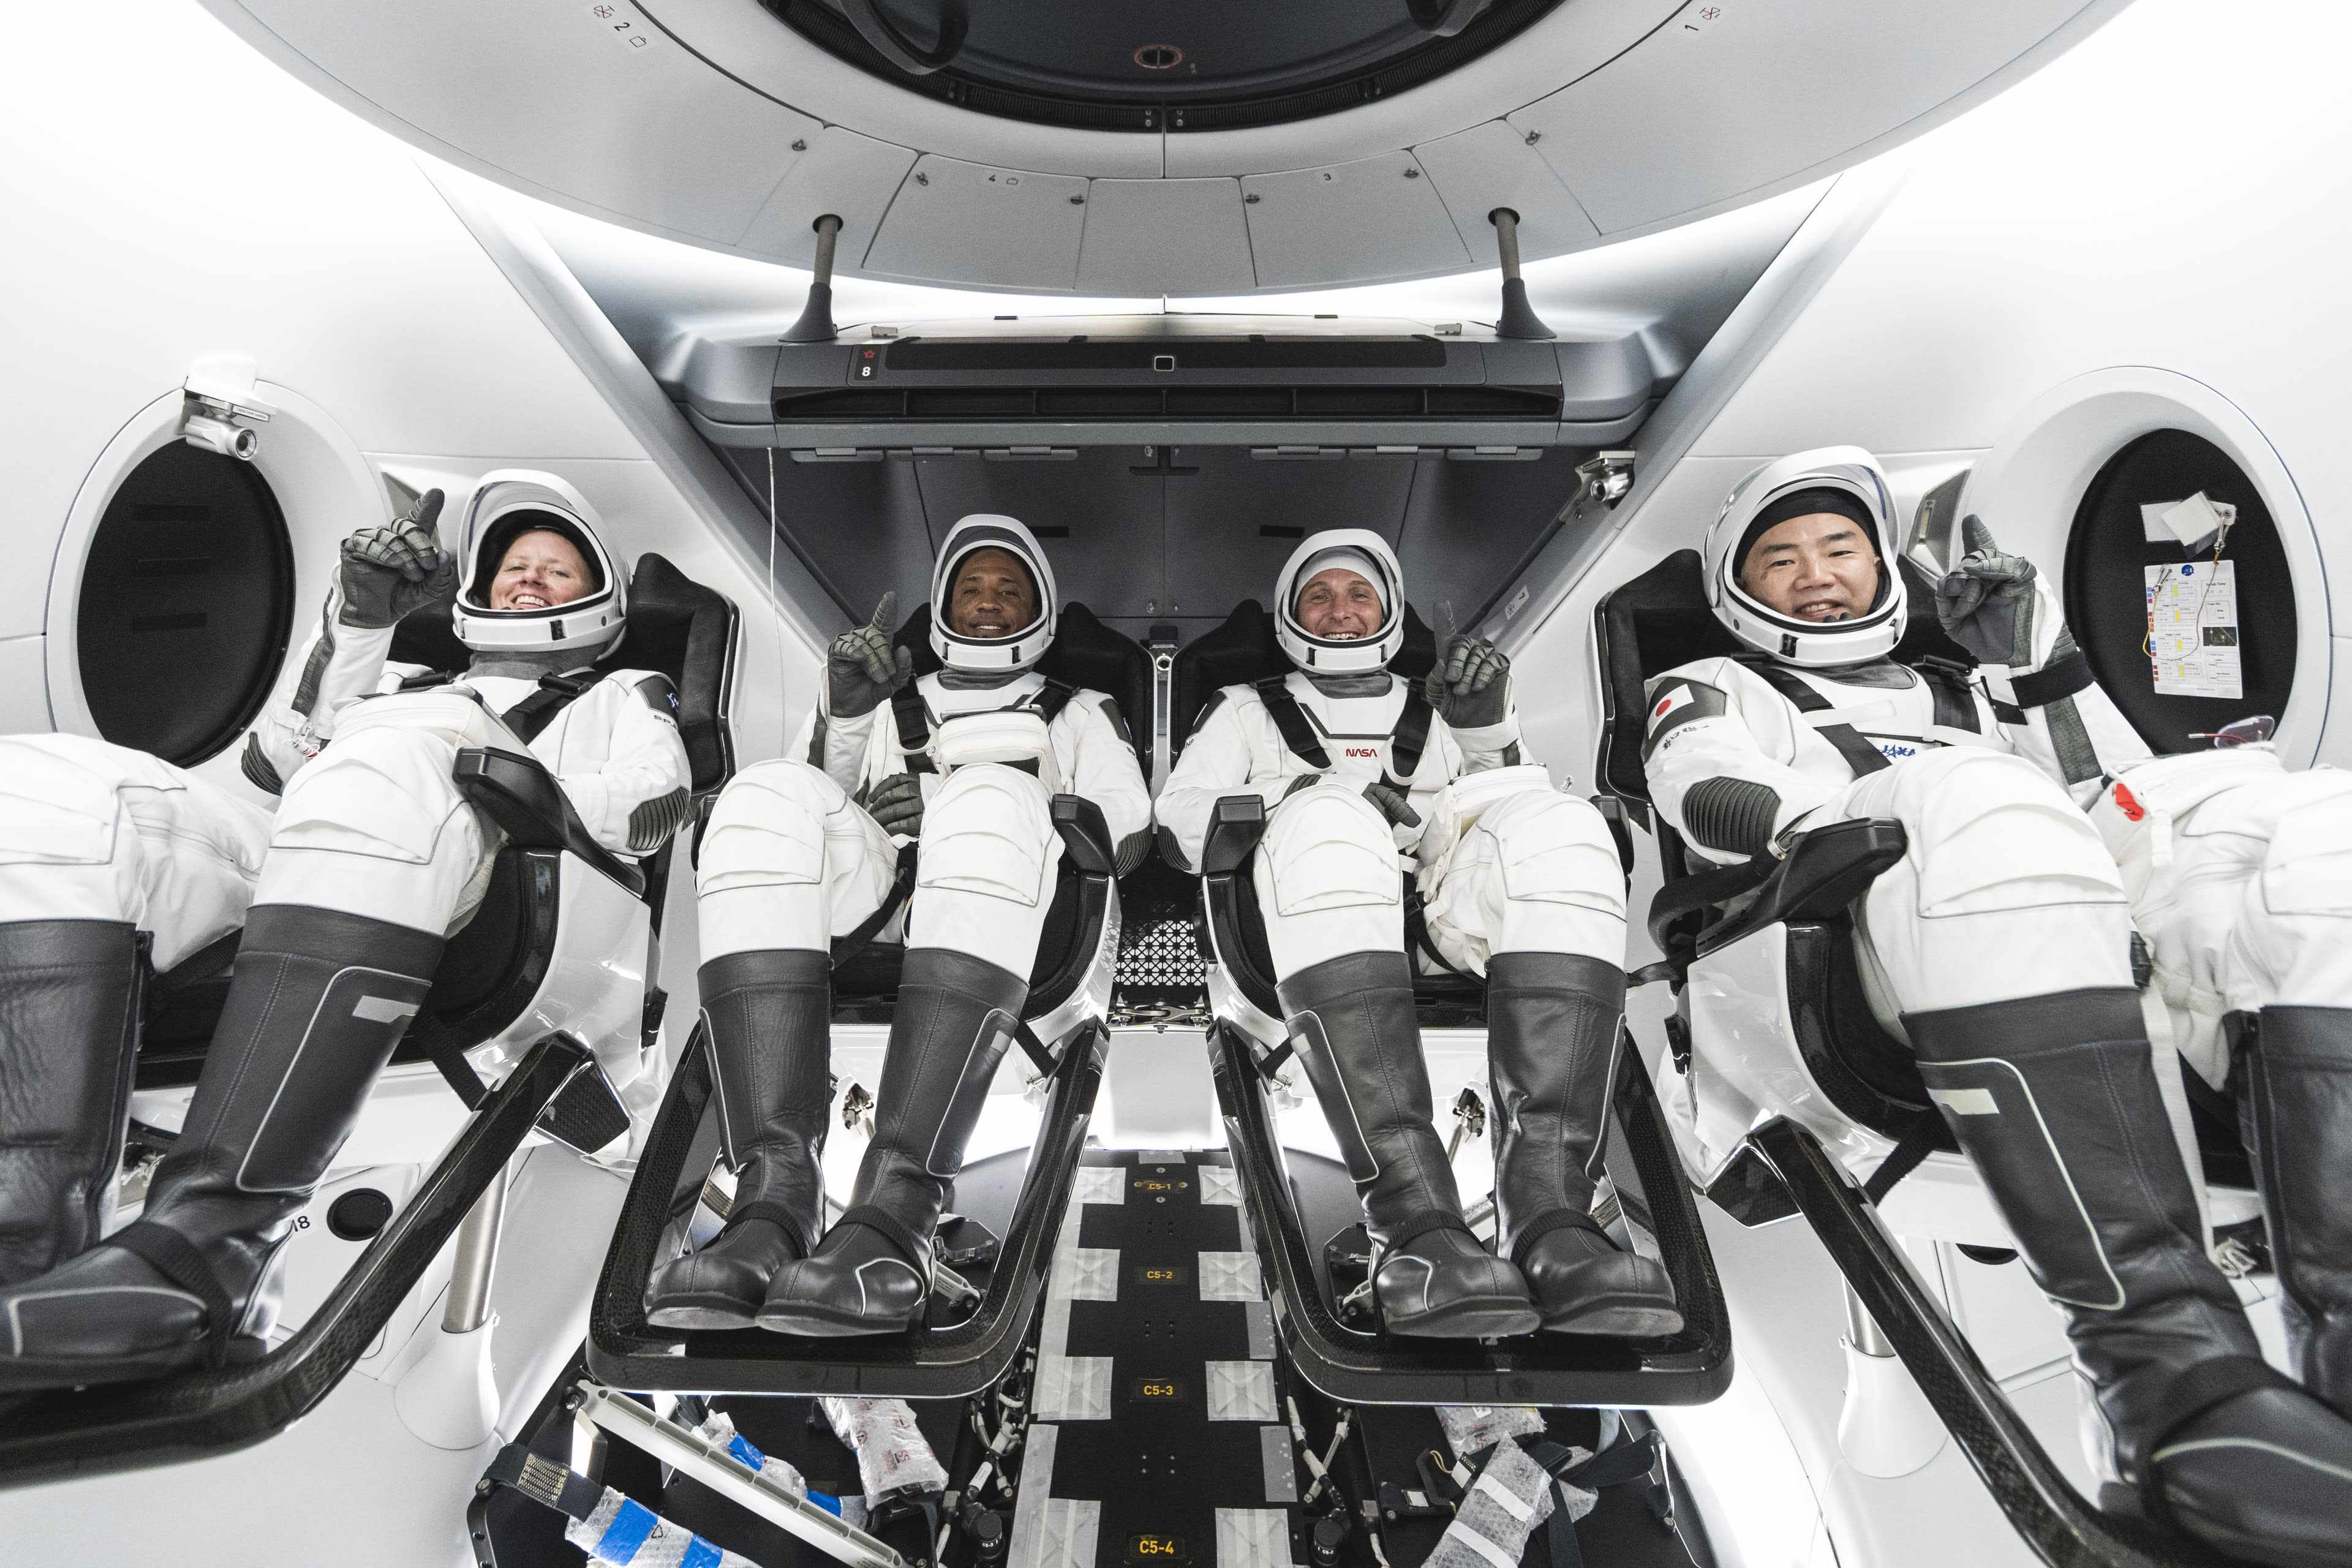 spacex nasa astronaut mission length